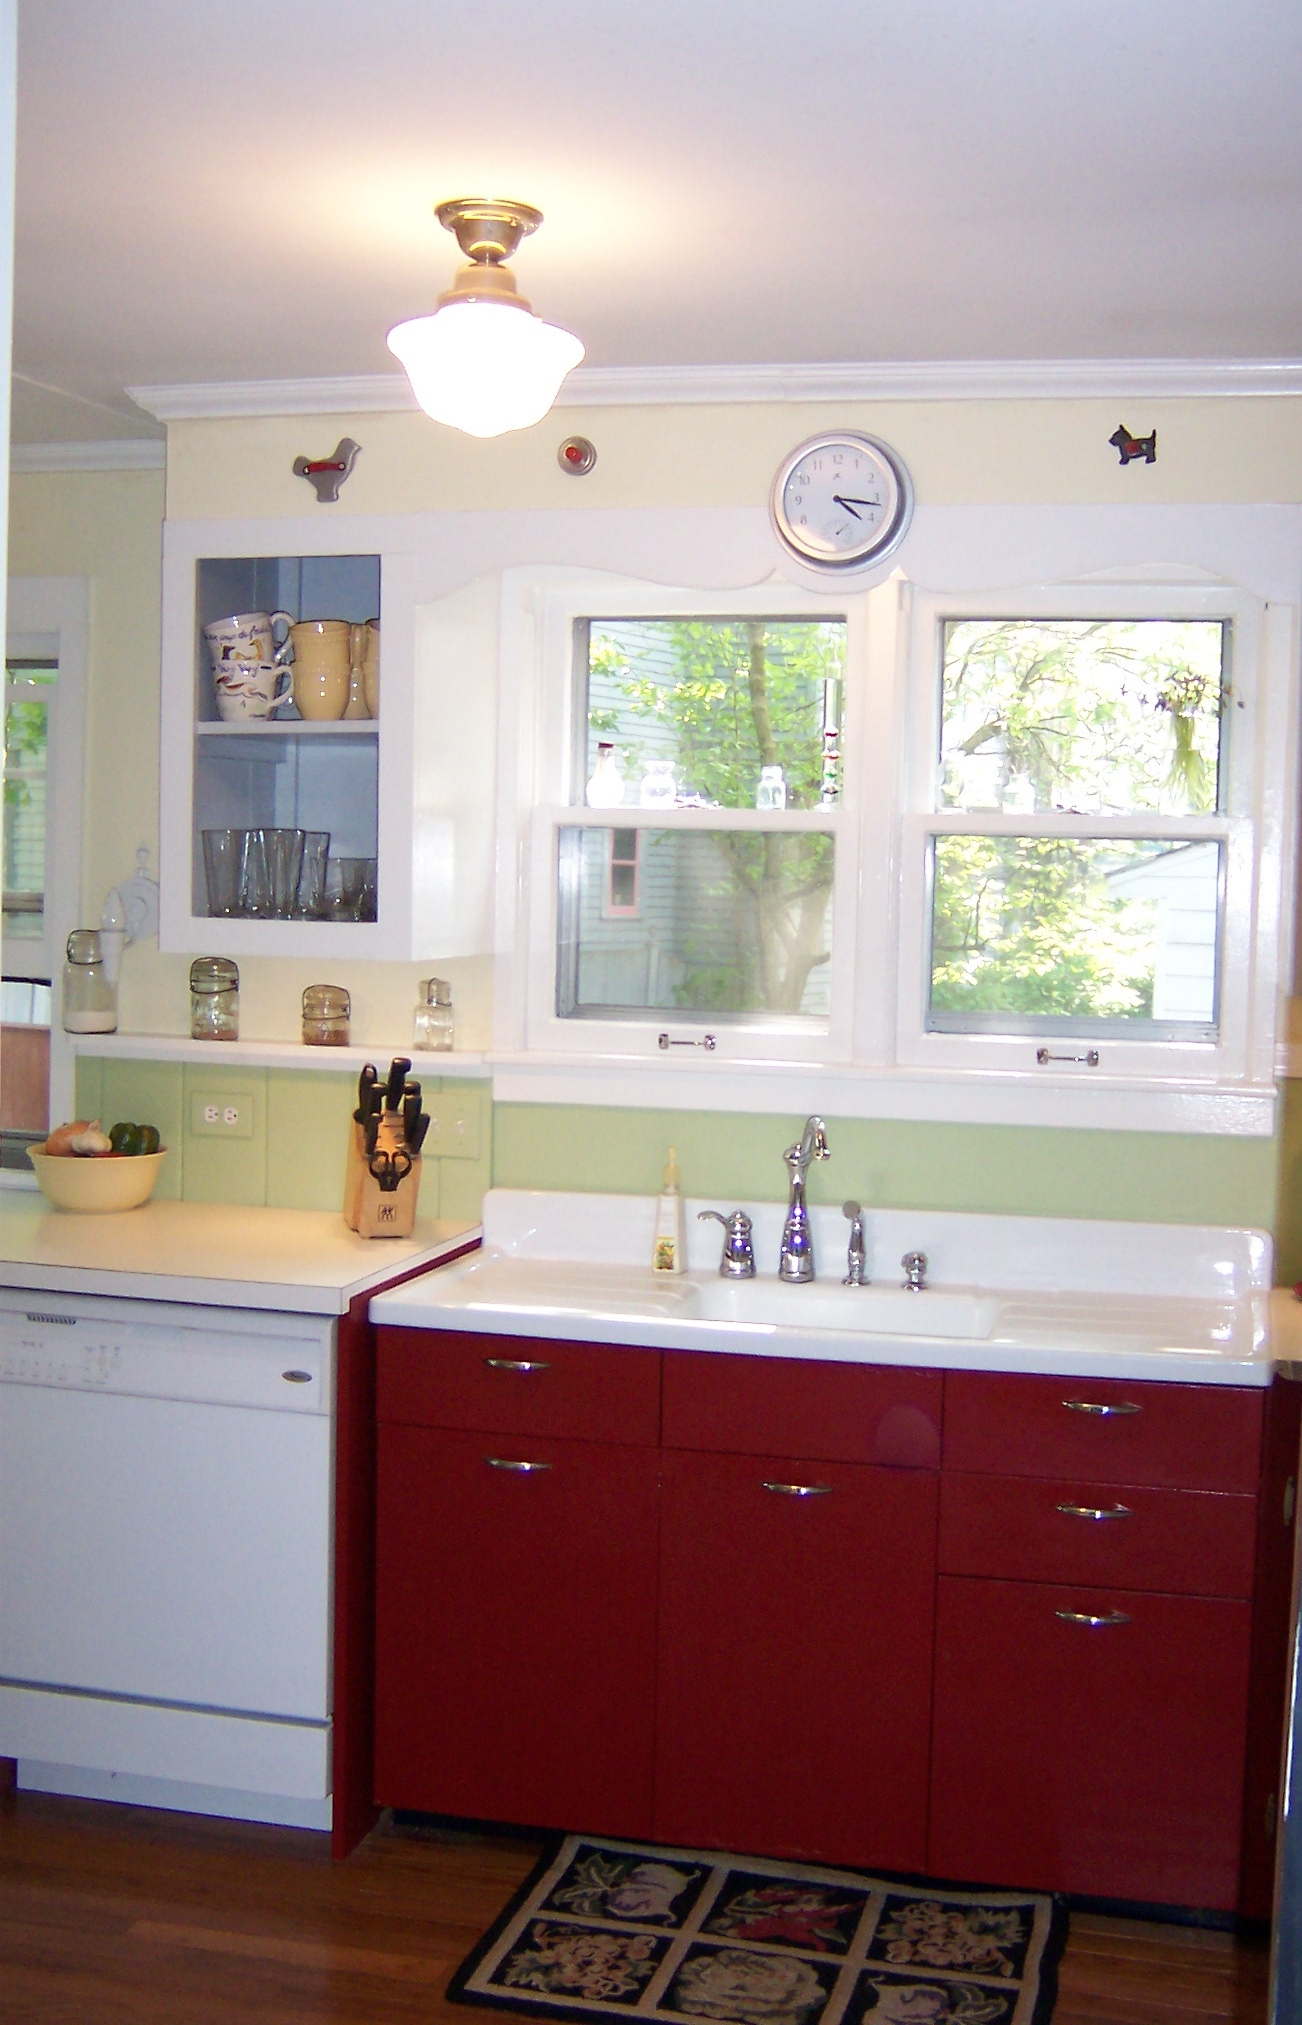 Victorian style faucet, new dishwasher/countertop and new light ...